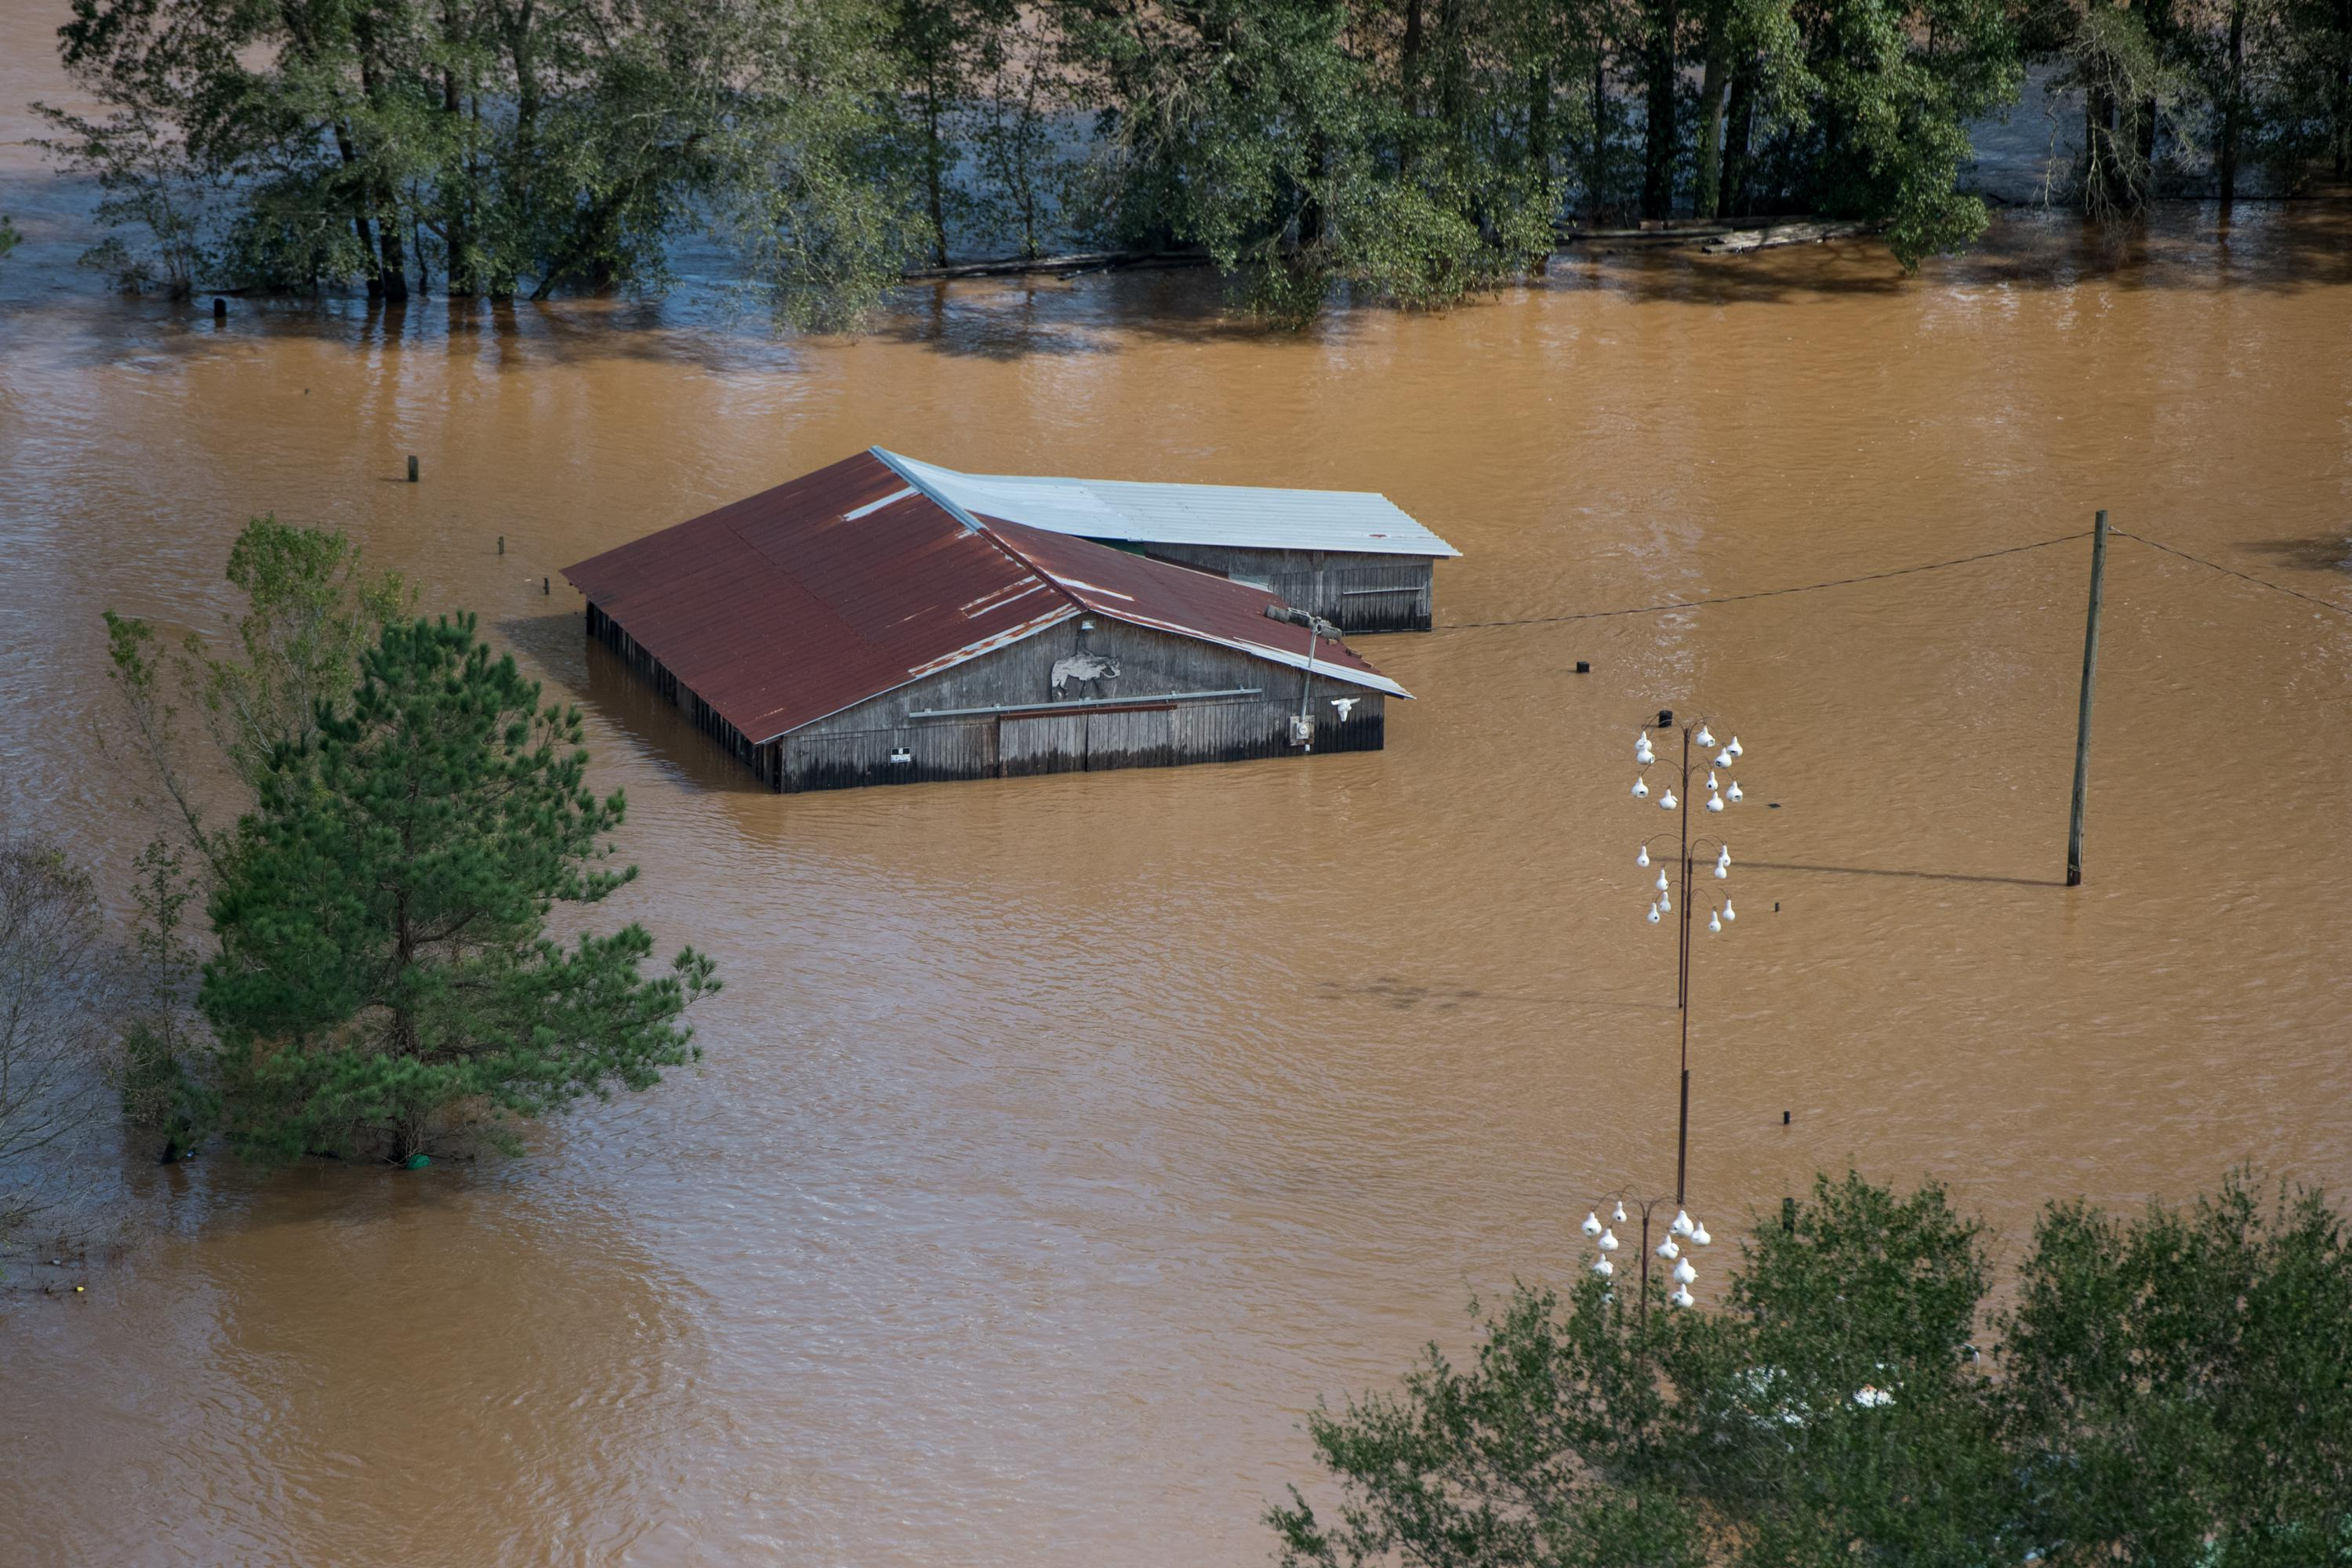 An aerial shot of a roof of a barn surrounded by brown flood waters